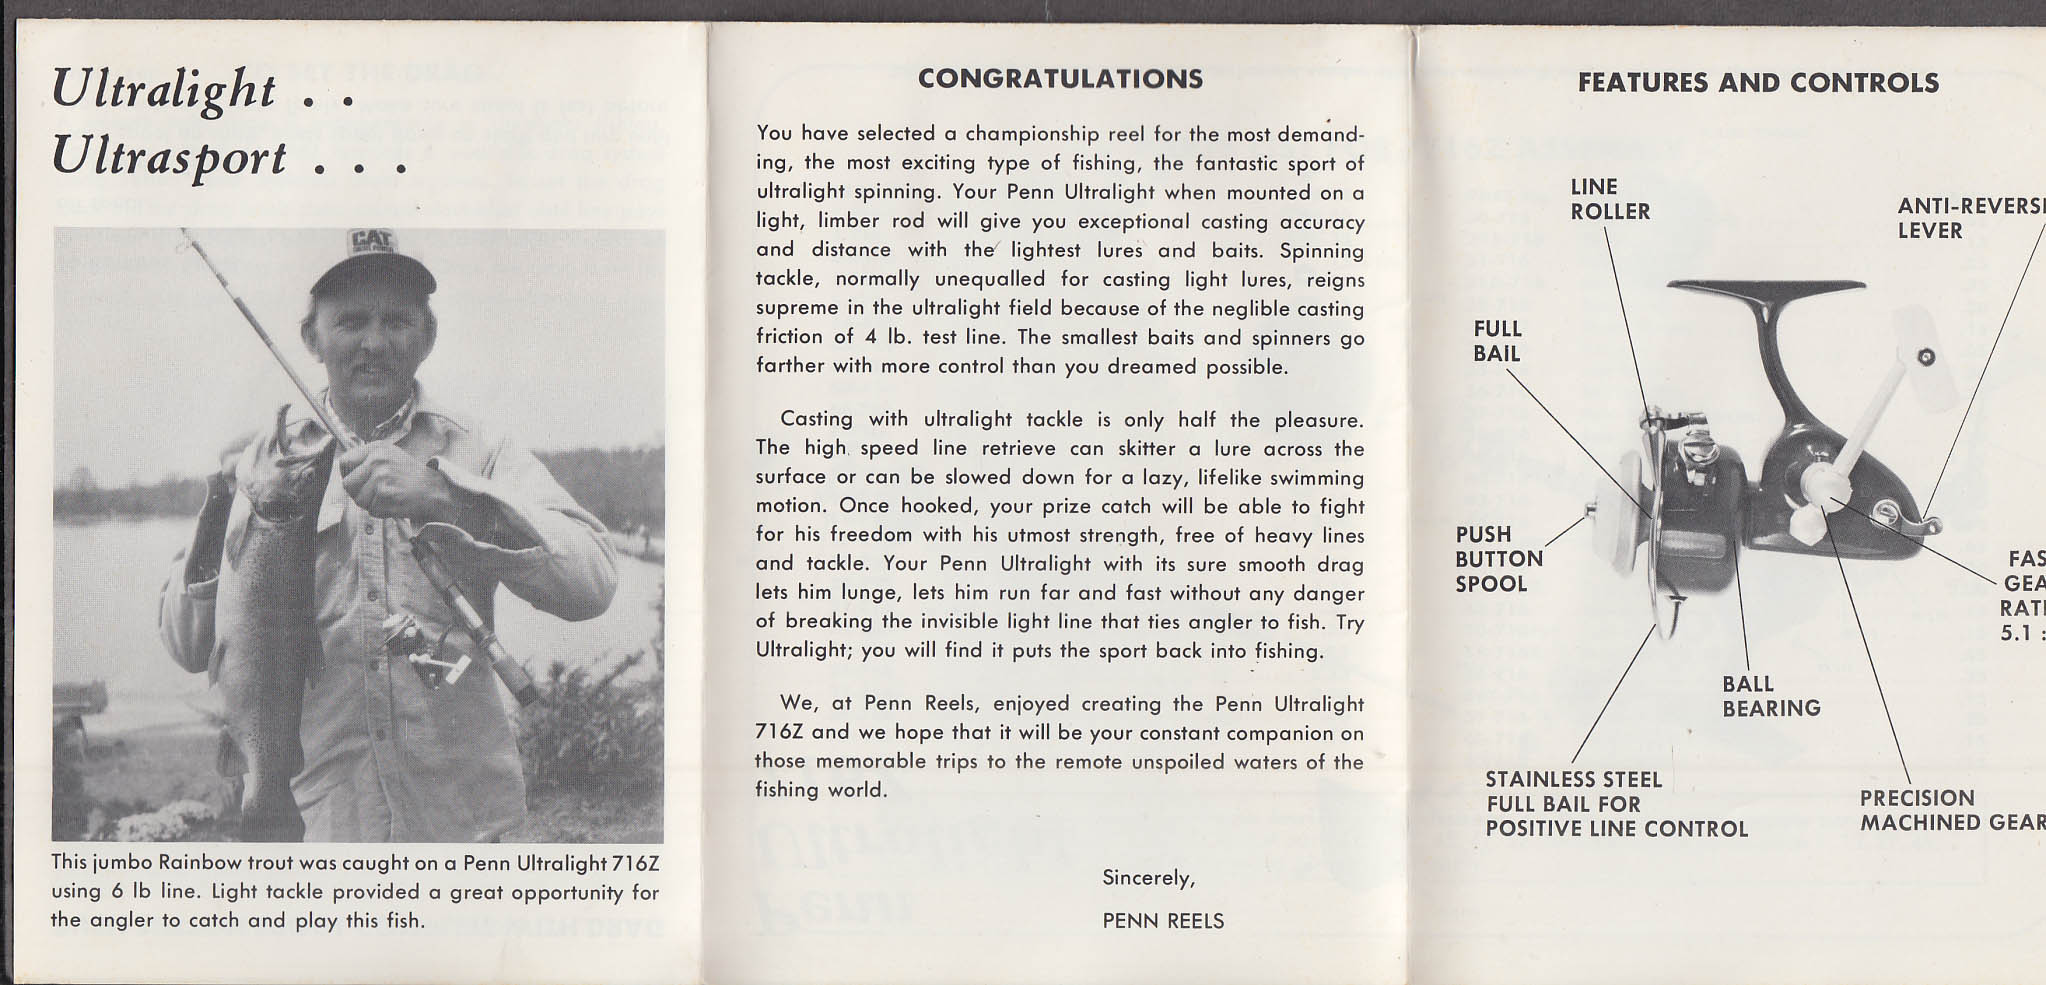 Penn Reels Spinfisher Ultralight 716Z Instruction Manual 1978